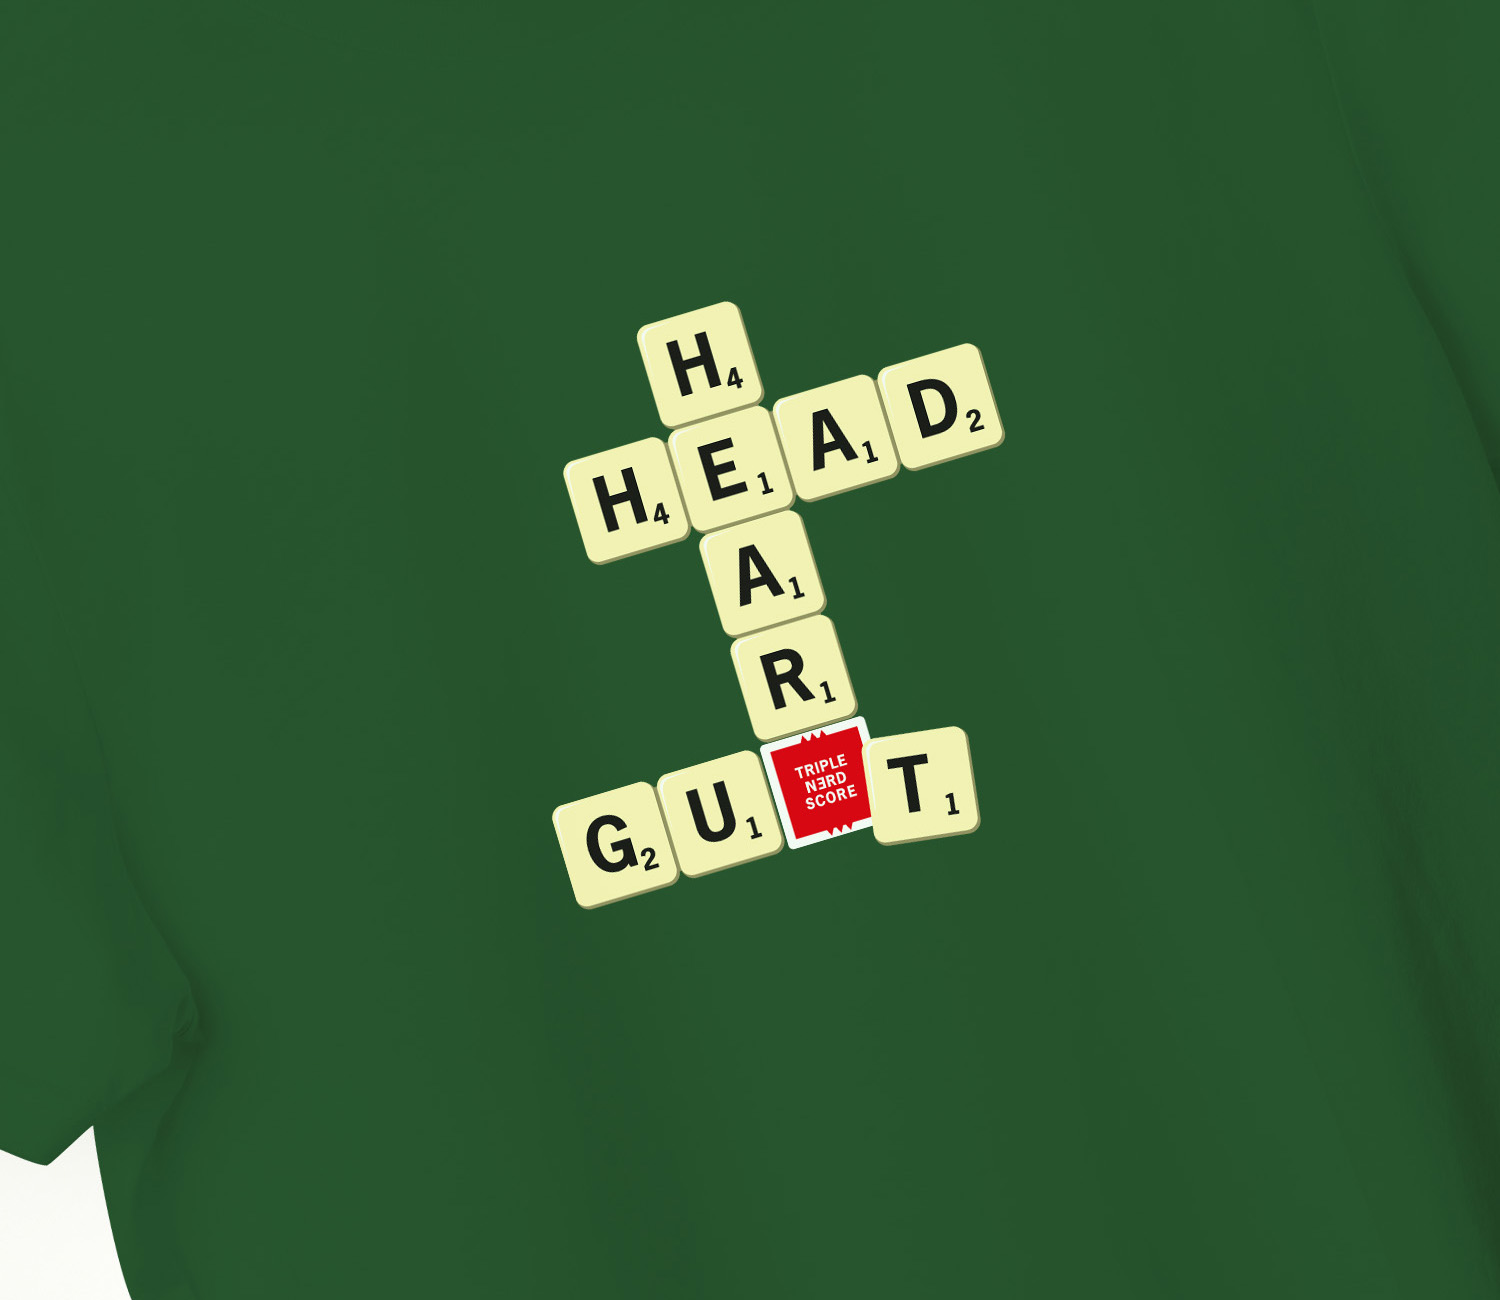 Scrabble T-shirt Bottle Green. Detail